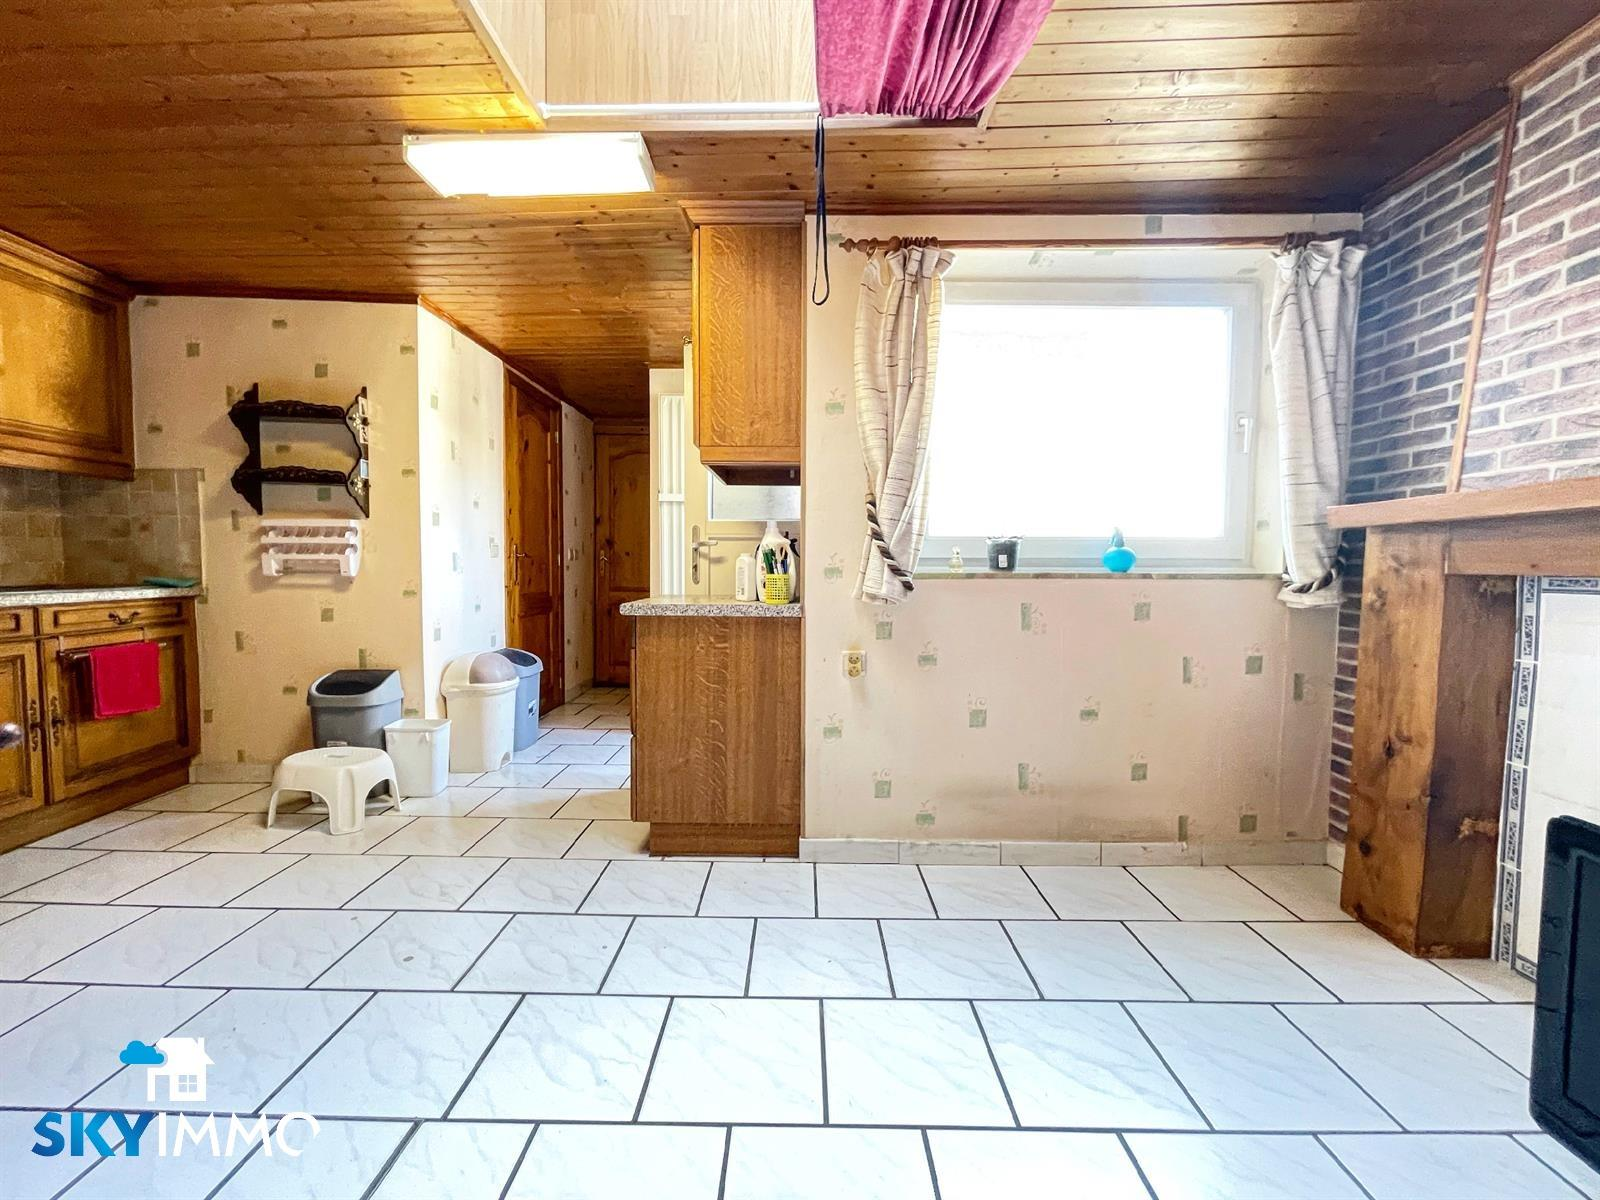 Huis - Flemalle - #4394734-7